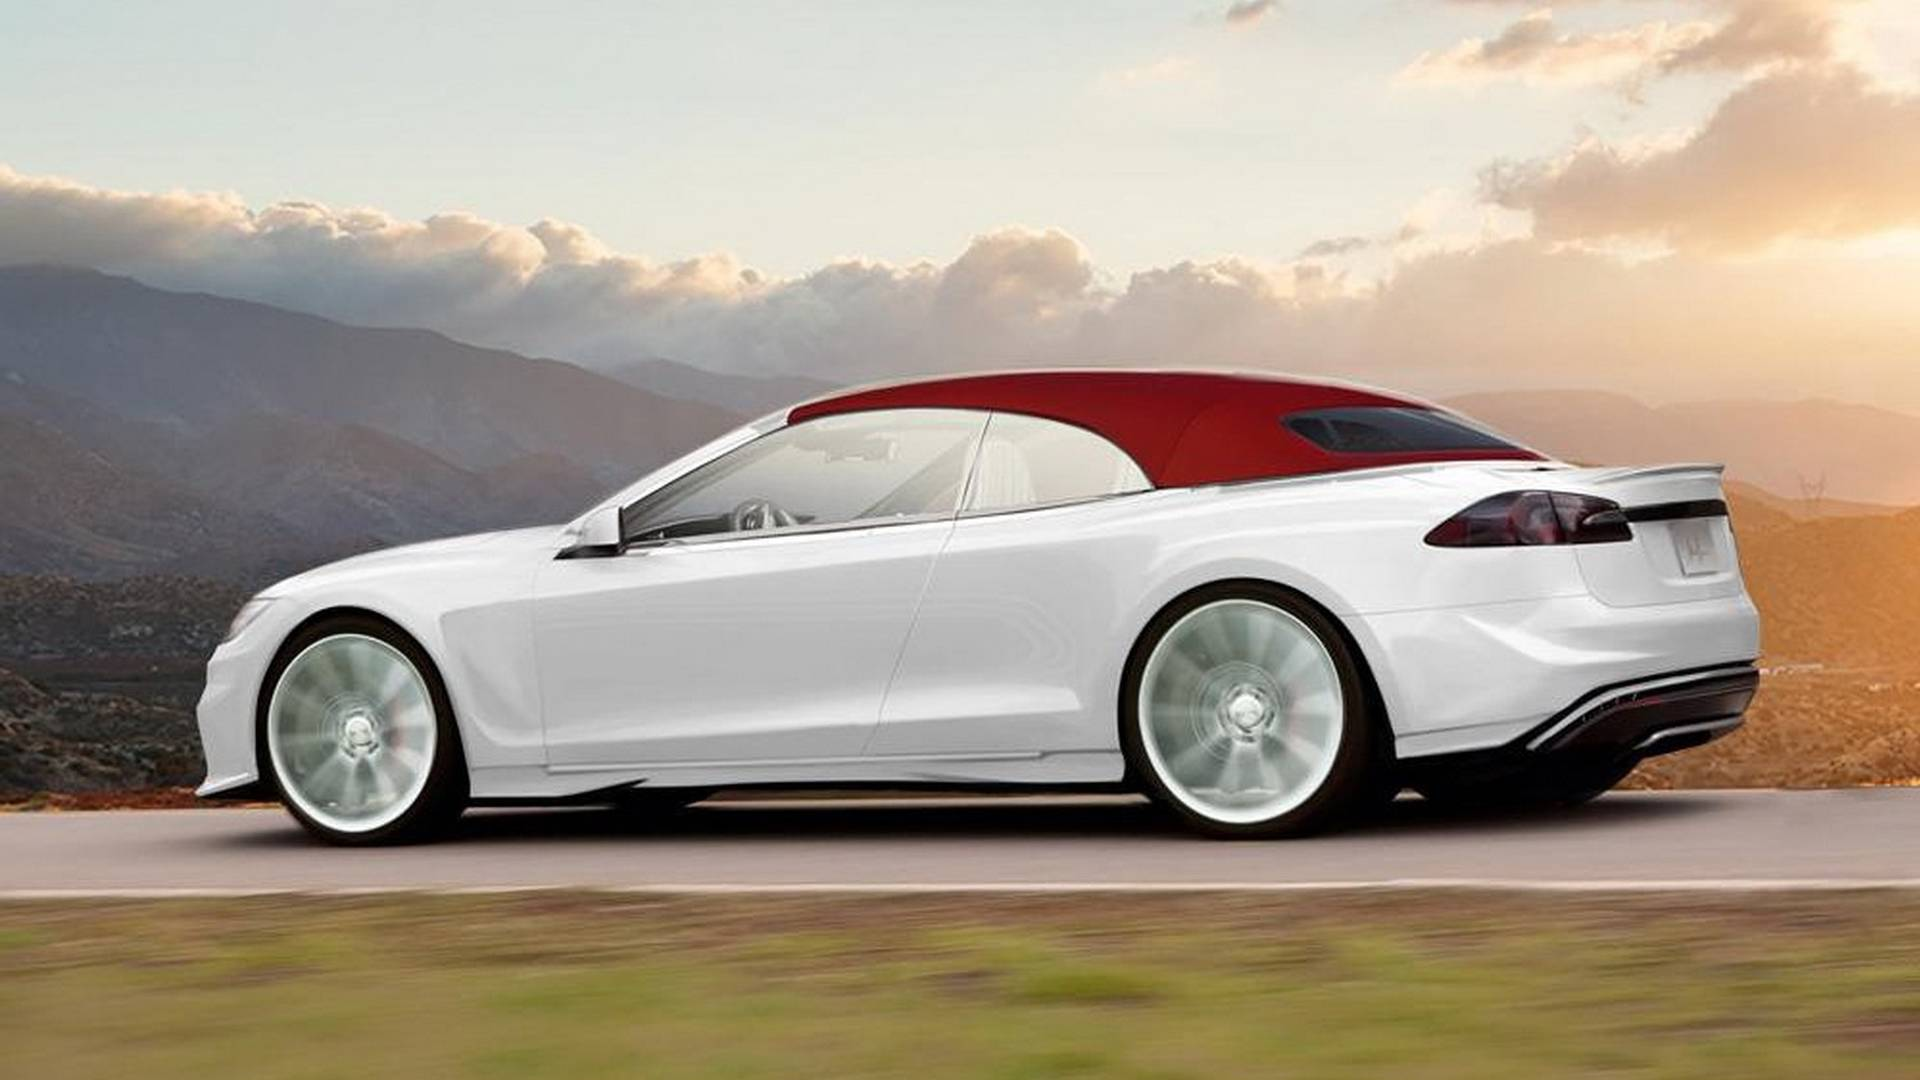 ares-design-tesla-model-s-convertible